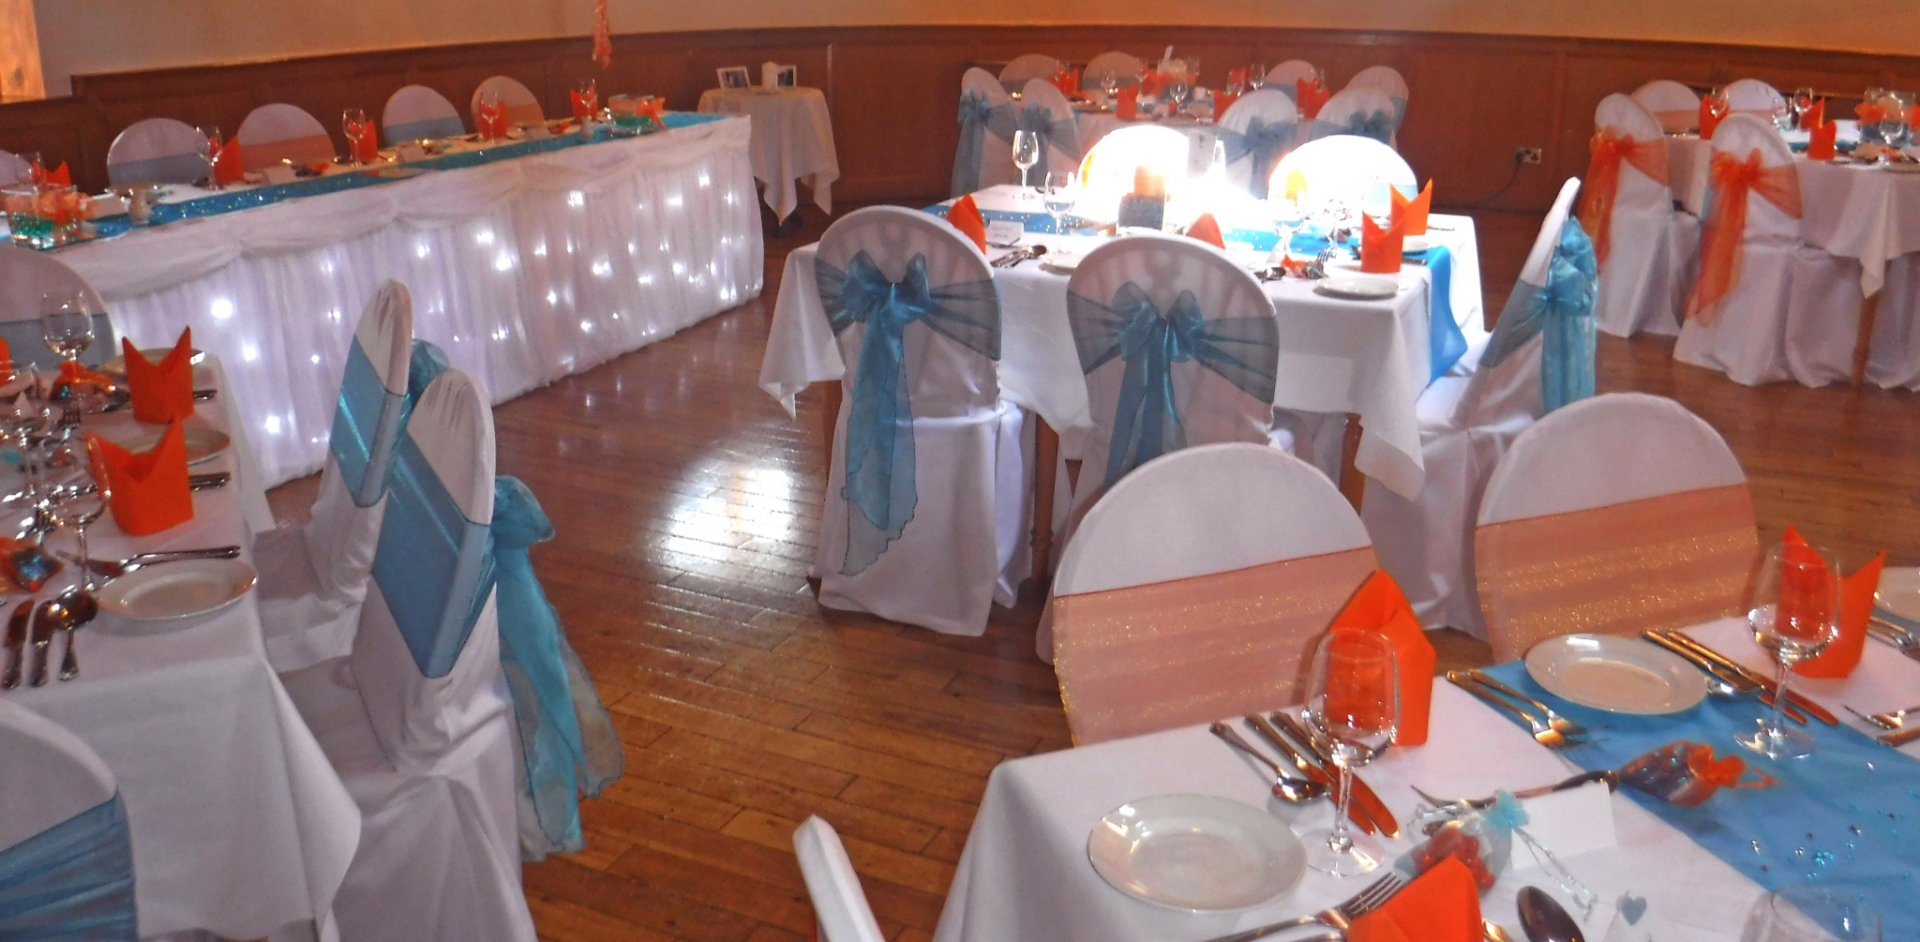 Gretna Green Wedding Venue and Hotel